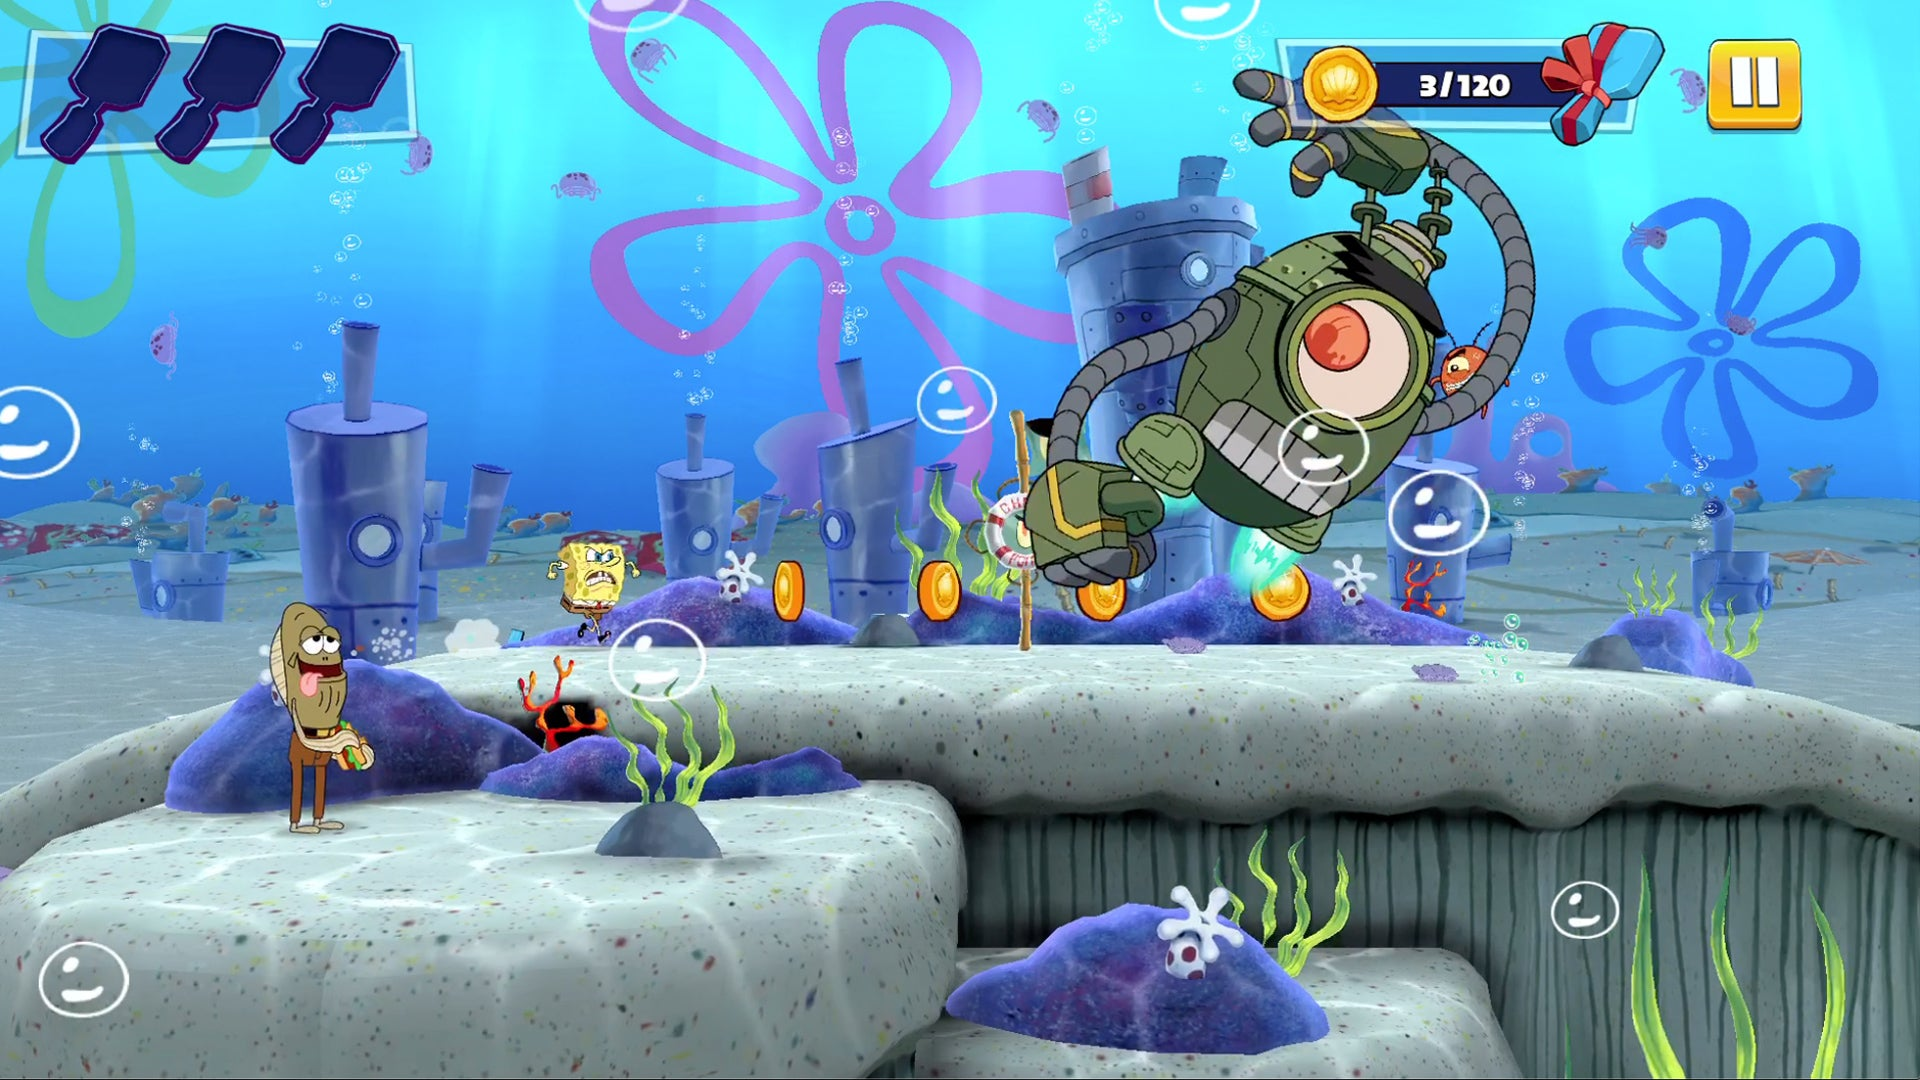 Aww, Apple Arcade's Got A Spongebob Game Now